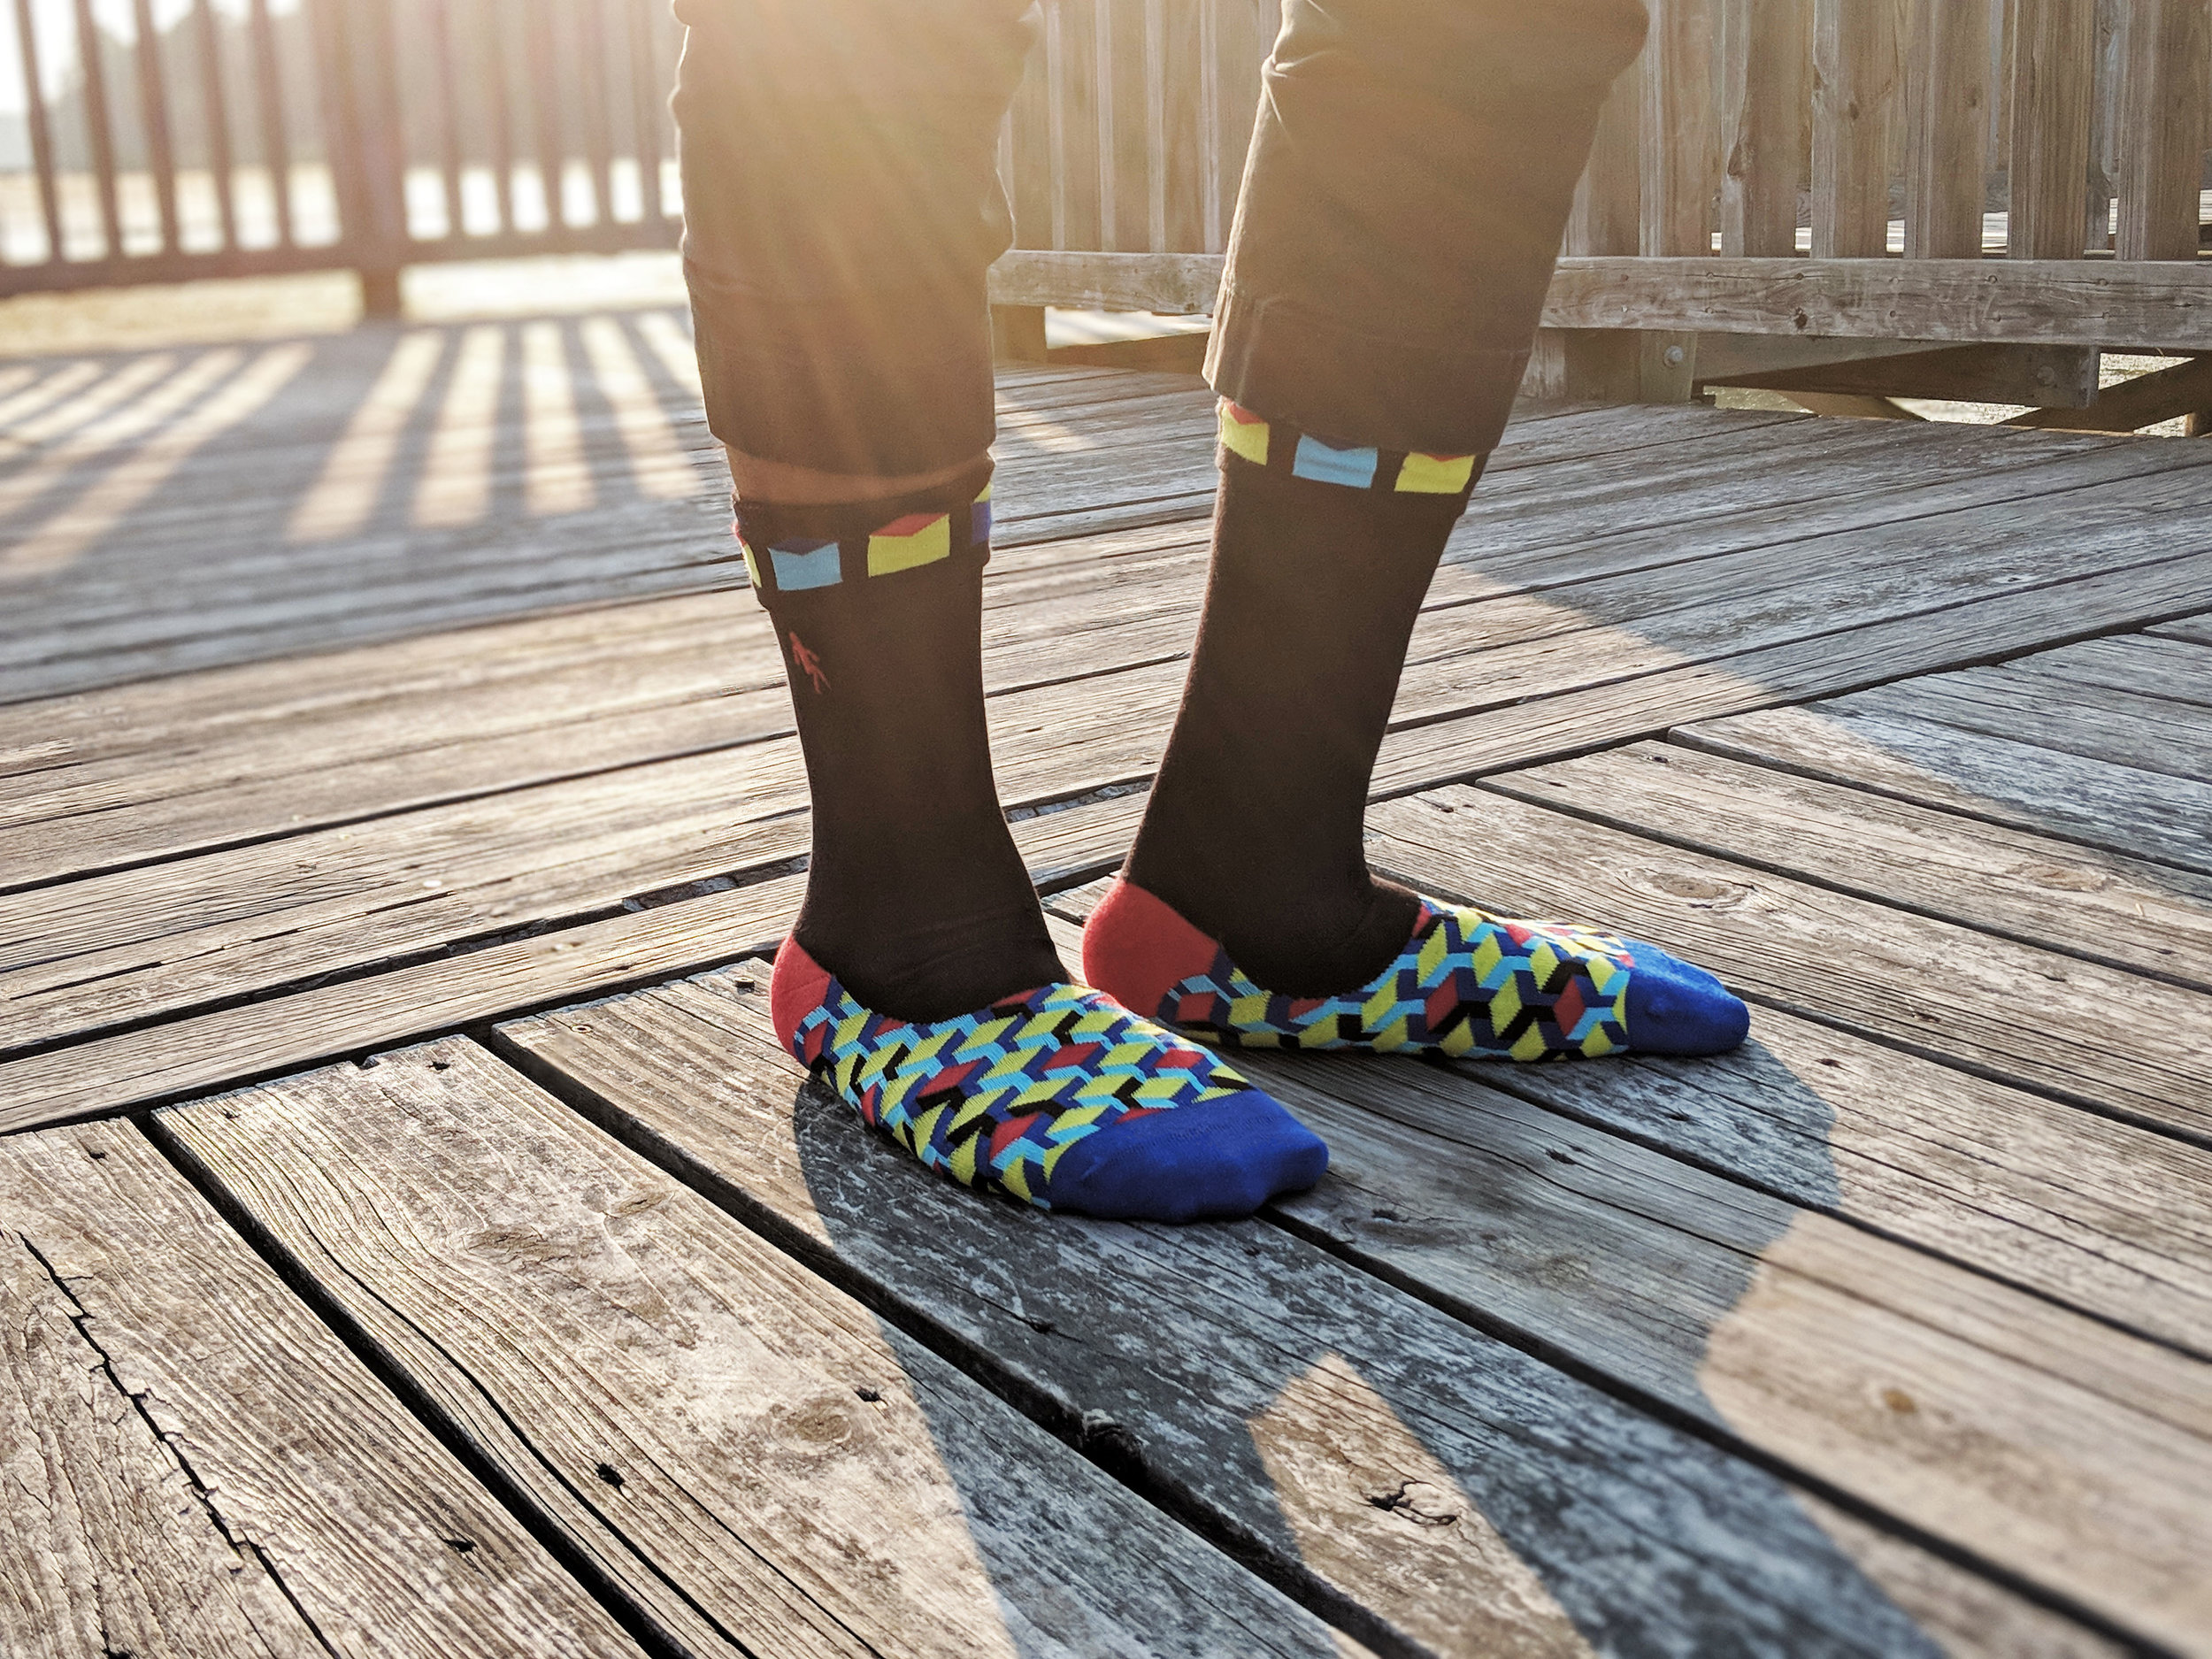 Feeling a little rebellious? Maybe you took a long lunch, and ran out to the park for a little fun in the sun; we did! Our sock model, Nik, shows off Quiet Rebellion's pattern that celebrates Imhotep, the ancient Egyptian architect. Photo Credit: The Sock Review